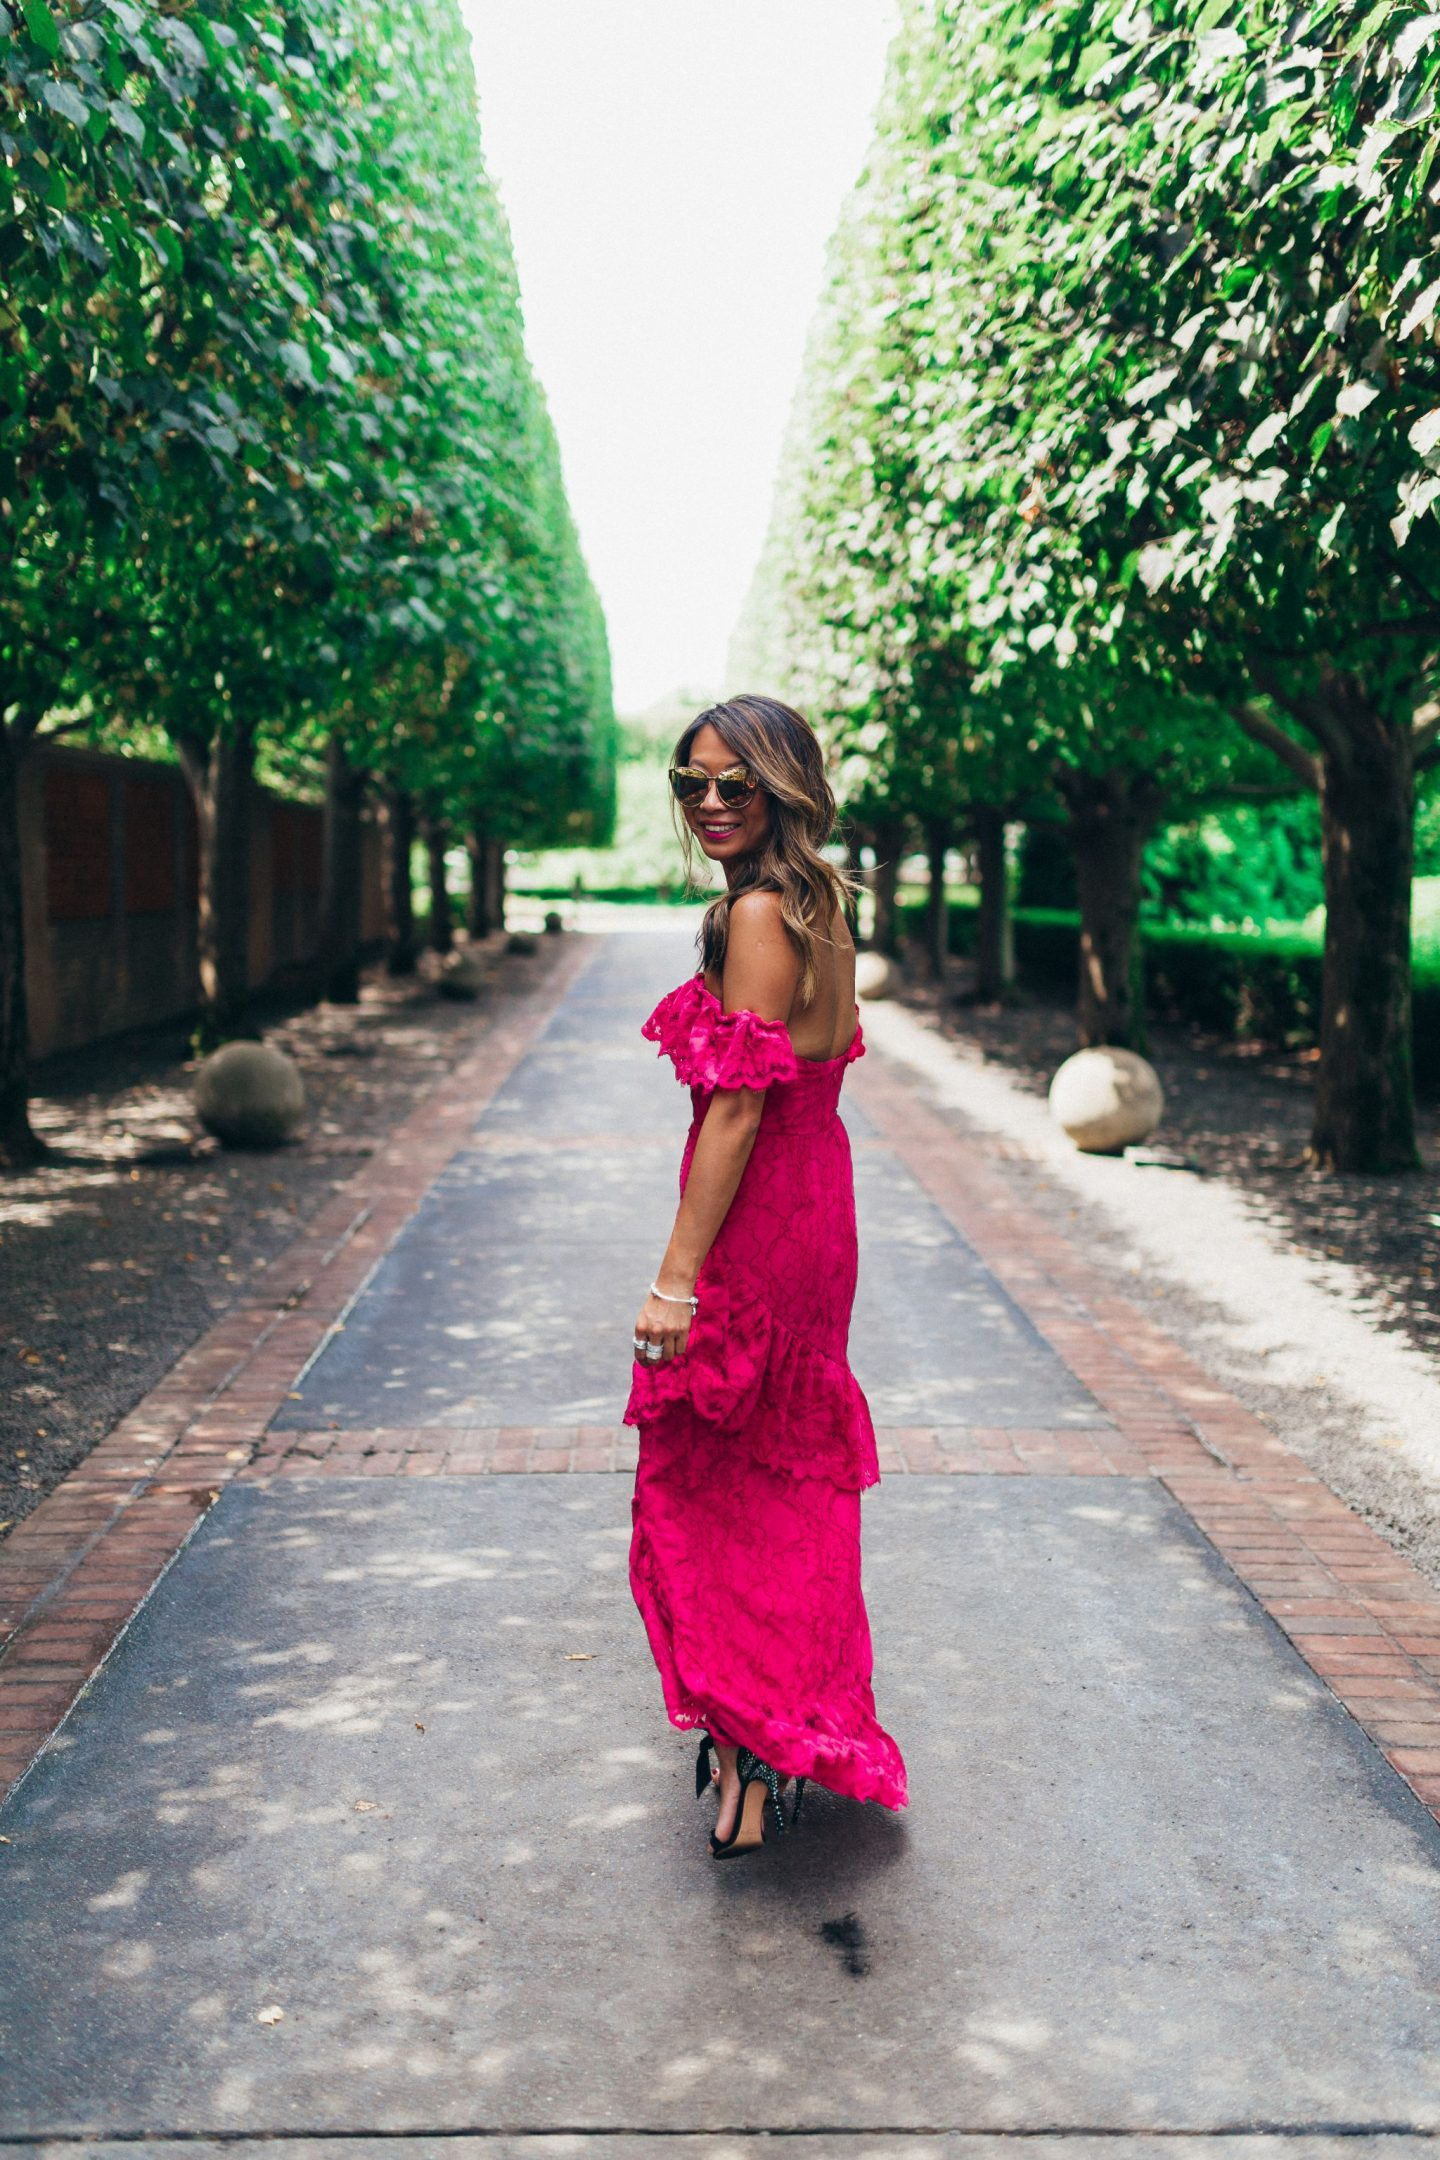 Lovers and Friends Lace Gown, Jennifer Worman, Chicago Botanic Garden, Revolve Dress, What to wear to a Wedding, Wedding Guest Style, Pink Lace Dress